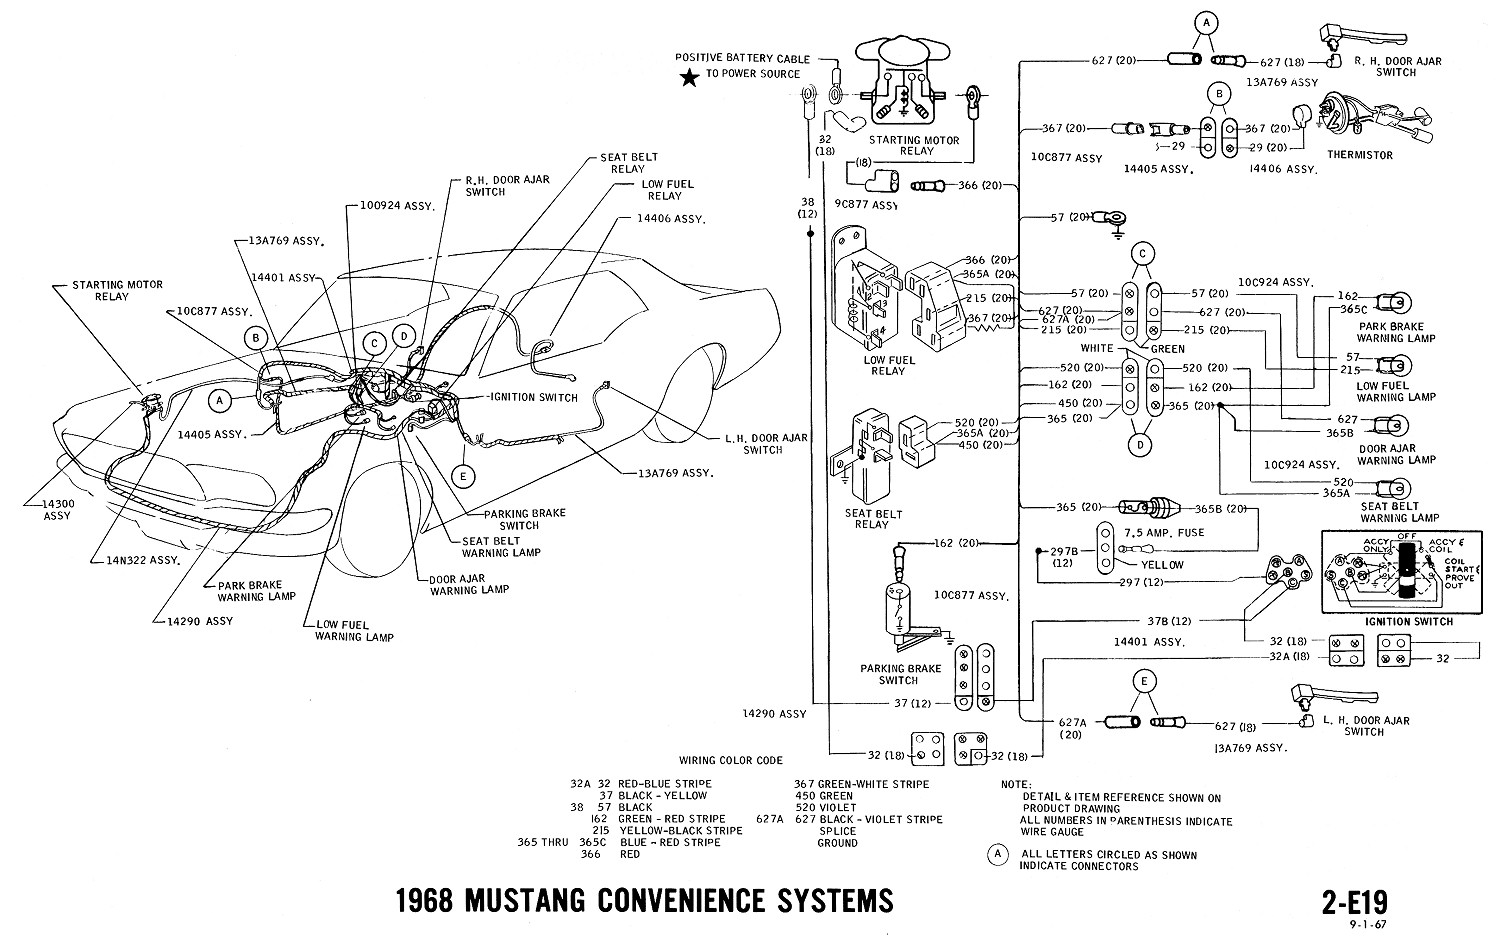 wire diagram with 1968 Mustang Wiring Diagram Vacuum Schematics on 1968 Mustang Wiring Diagram Vacuum Schematics also Fa6d5ccba00b2579be67cf6c6b388cbf in addition The Anatomy Of Single Coil Pickups moreover Atmega8 Breadboard Circuit Part 2 Of 3 The Microcontroller further 116061 Electrical House Wiring Made Easy Simple Tips Explored.